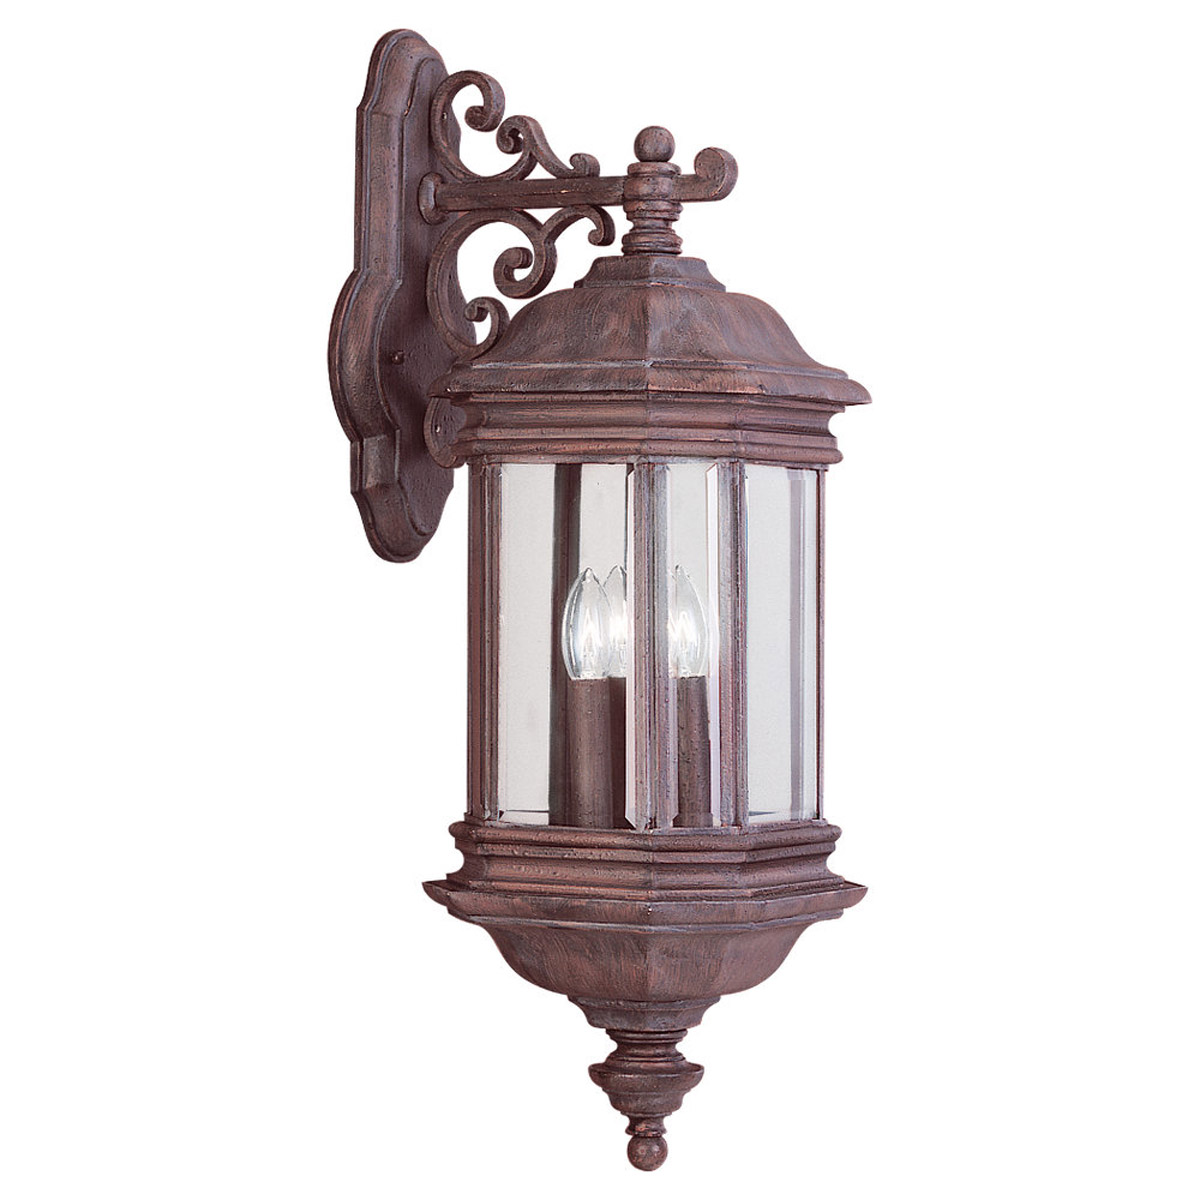 Sea Gull Lighting Hill Gate 3 Light Outdoor Wall Lantern in Textured Rust Patina 8841-08